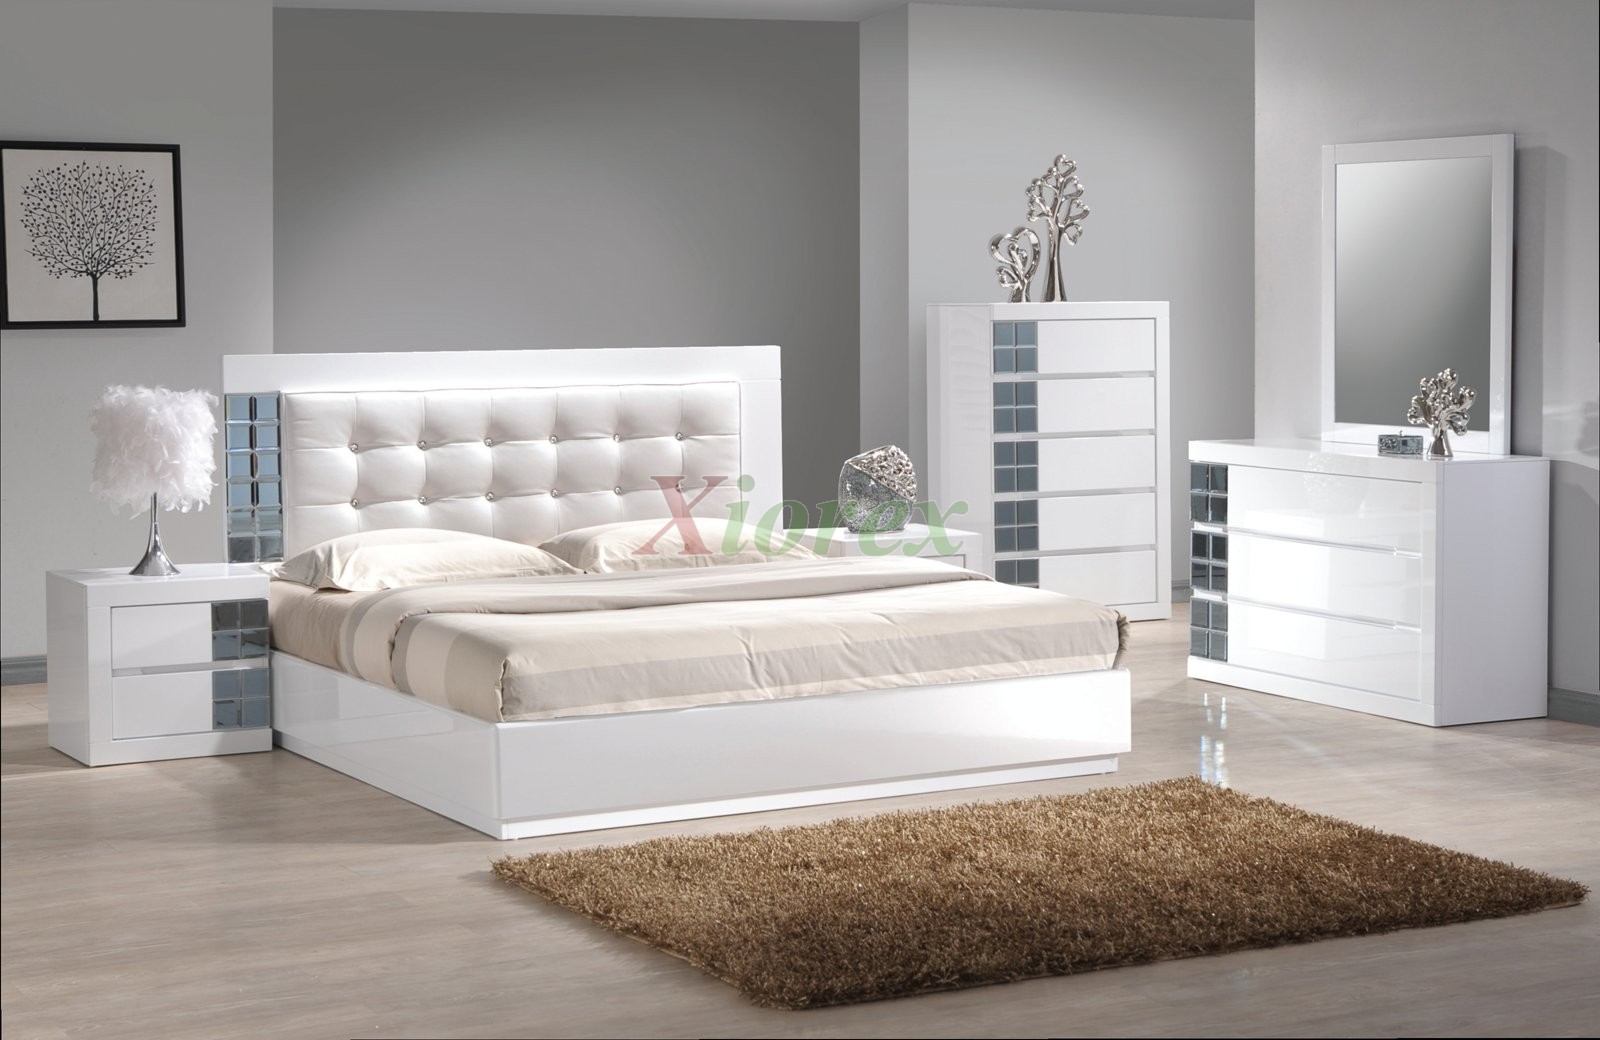 Perfect White Platform Bedroom Furniture Set W Upholstered Headboard Beds 149